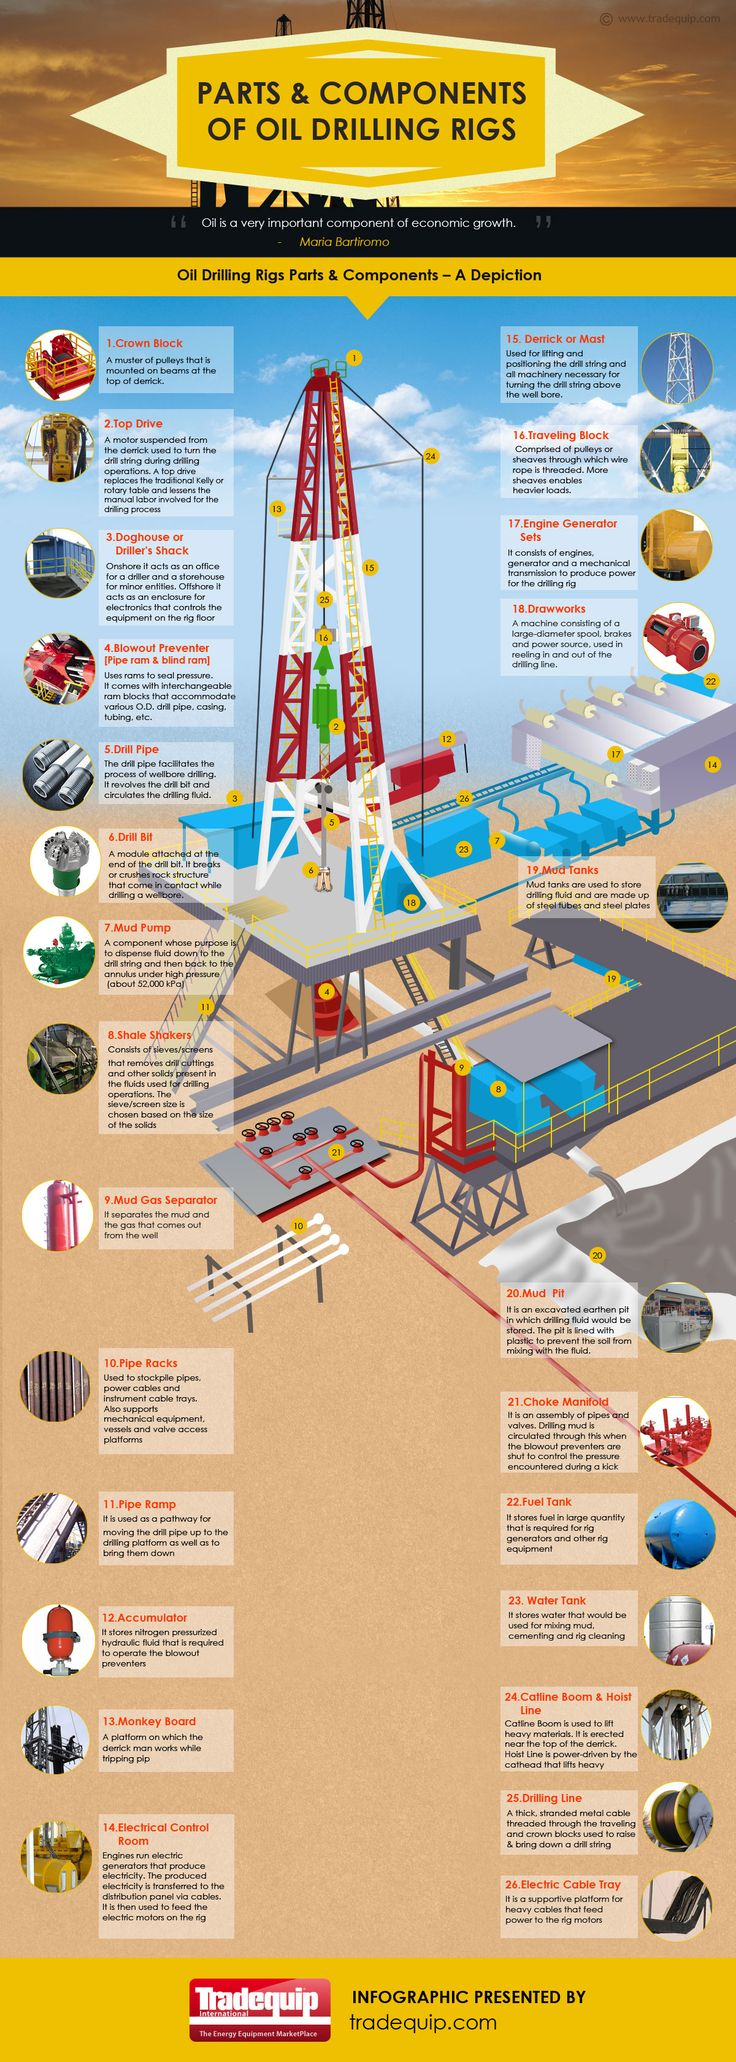 An Infographic on Parts and Components of Oil Drilling Rigs - Tradequip - The Energy Equipment Marketplace - provides a way to connect buyers and sellers of energy industry equipment in a safe and secure manner. Find infographic at http://www.tradequip.com/infographic/parts-and-components-of-oil-drilling-rigs